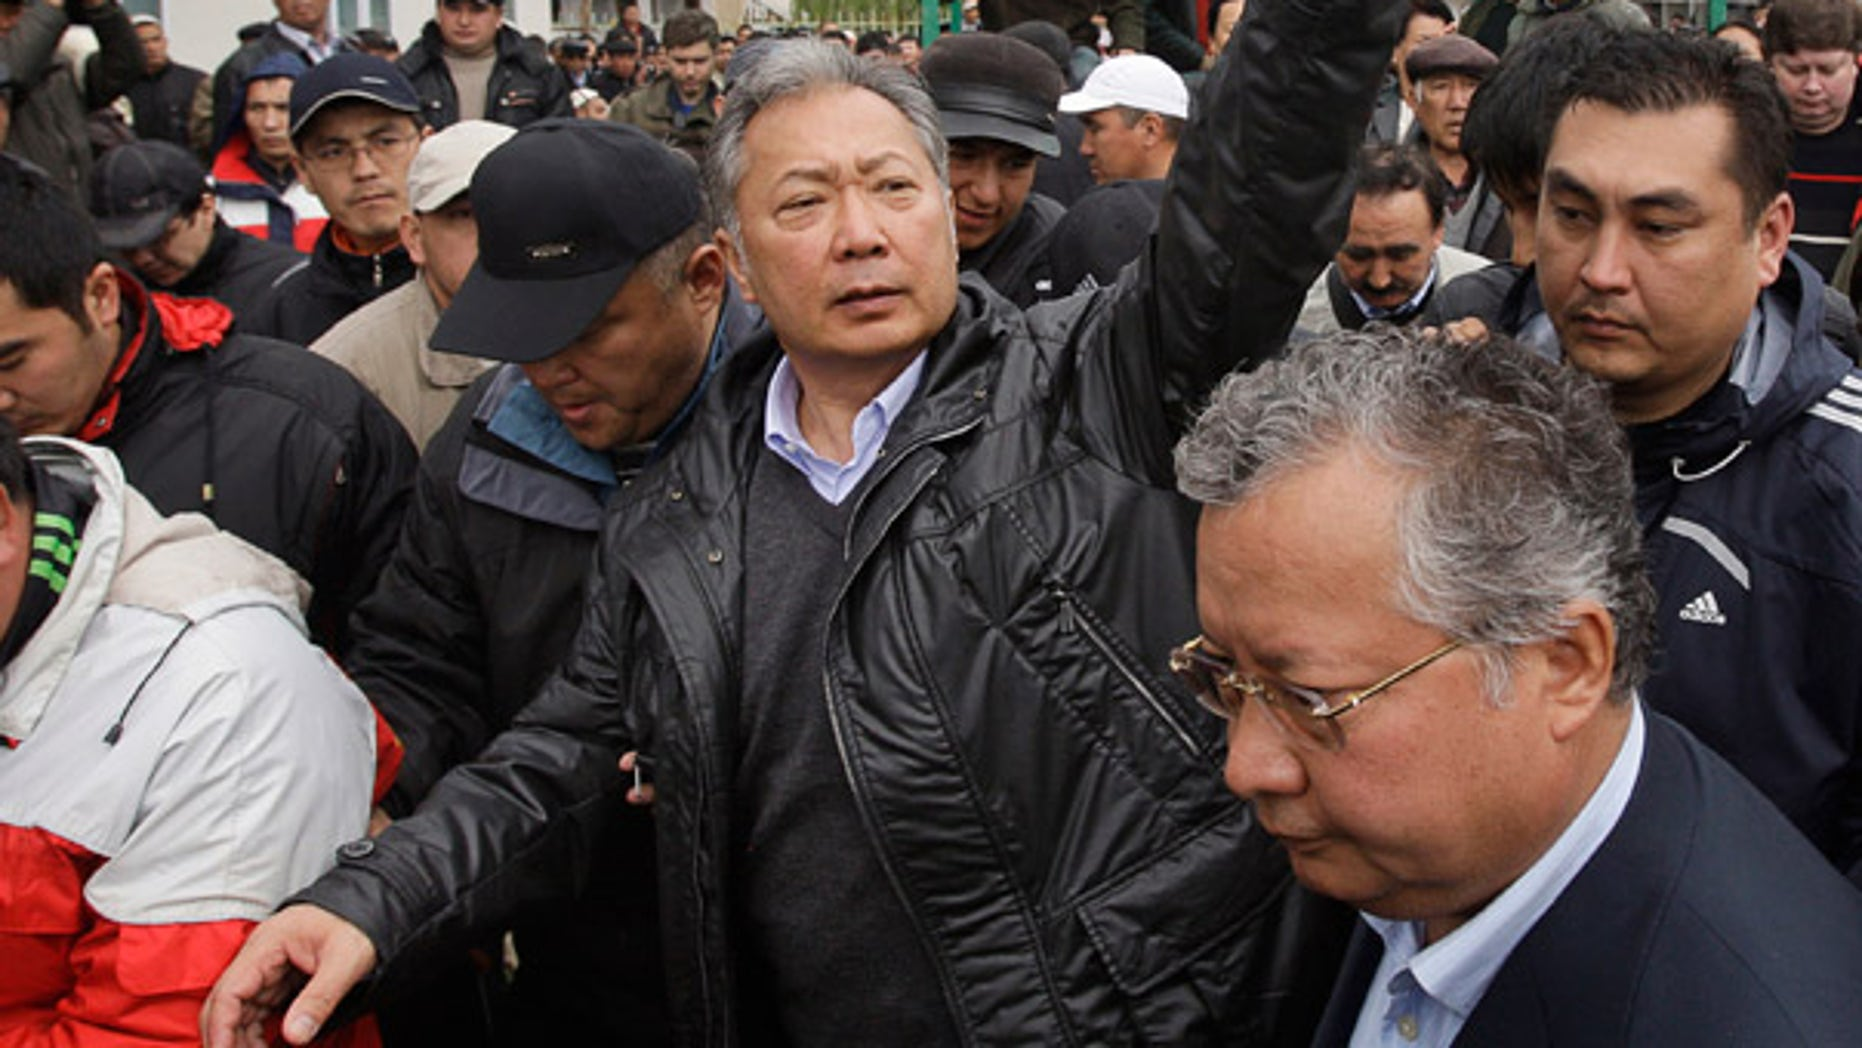 April 12: Kyrgyzstan's deposed President Kurmanbek Bakiyev greets supporters after a rally in the village of Teyit.